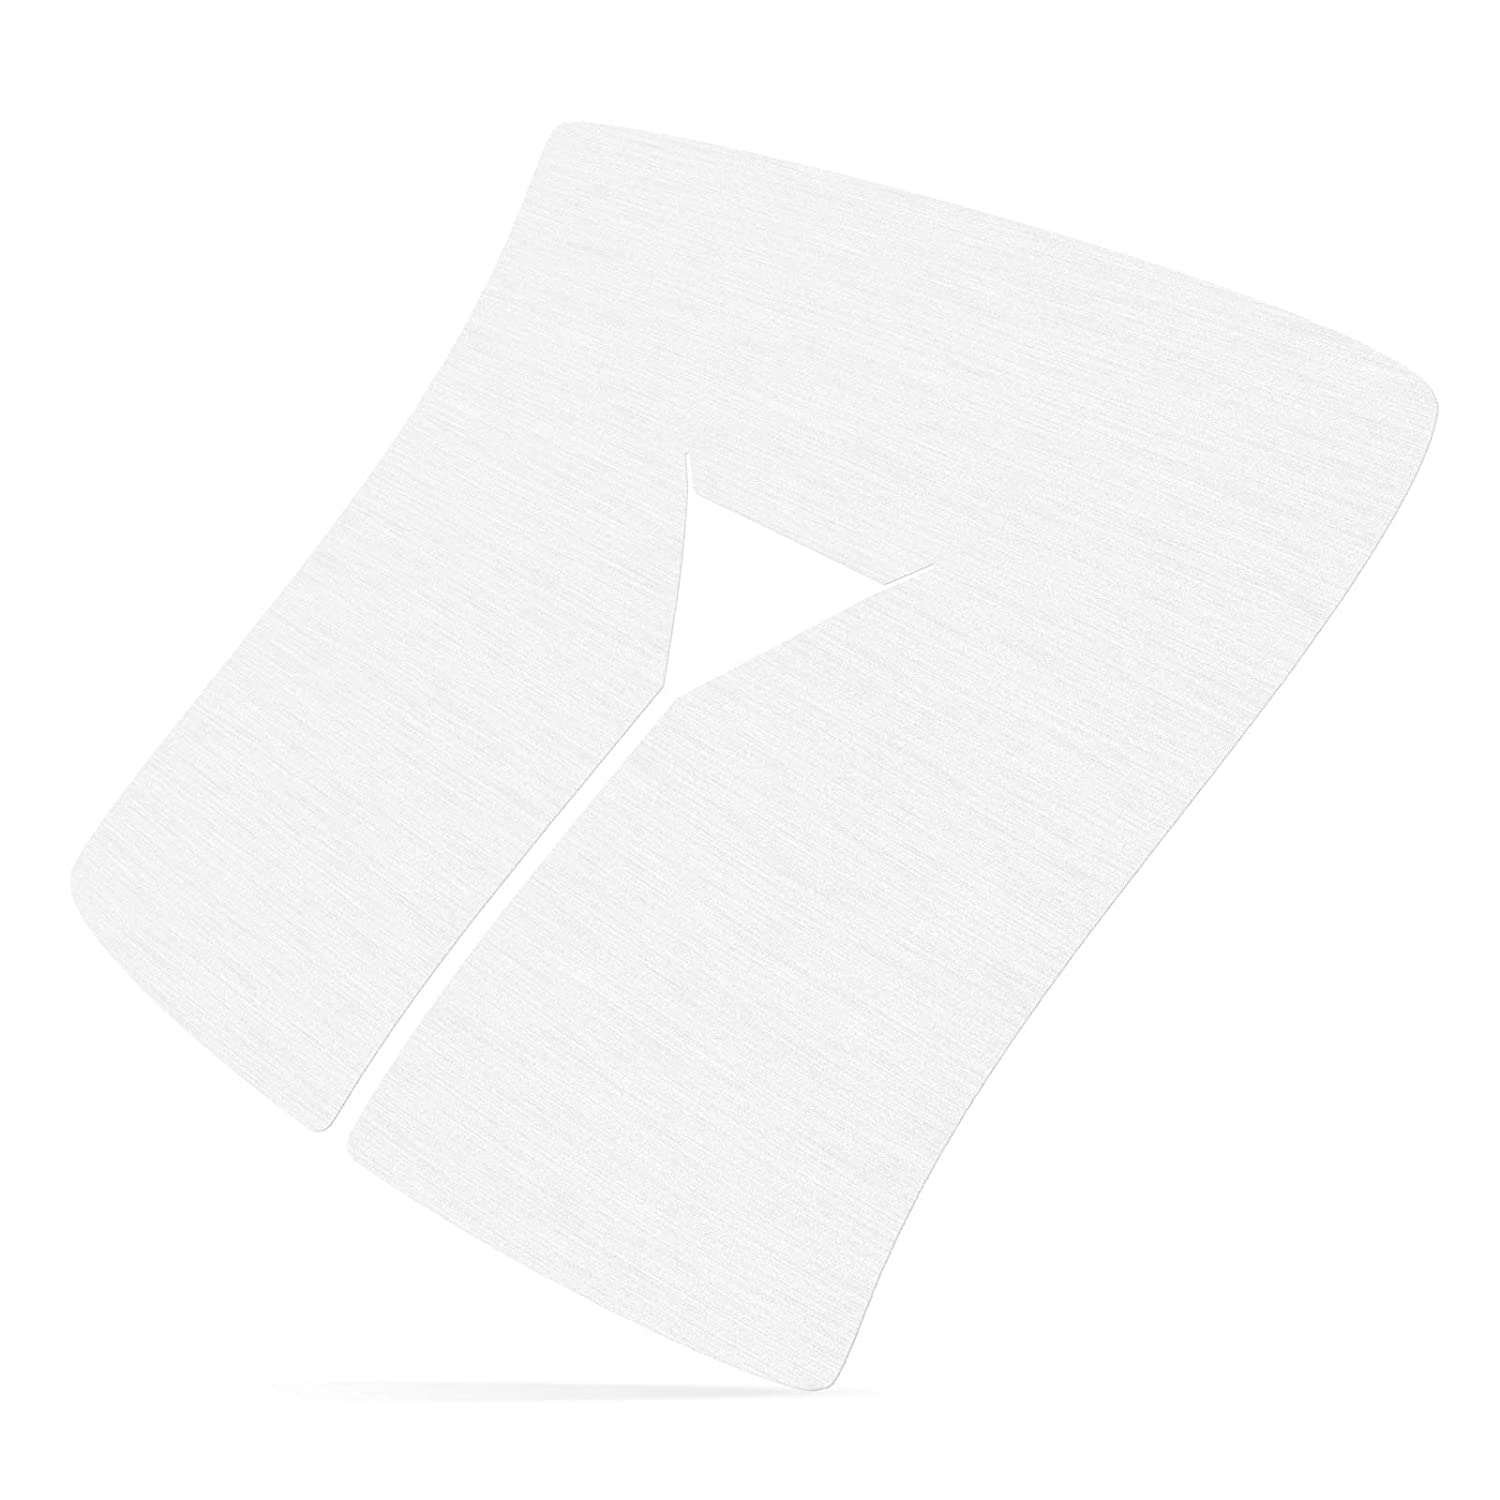 Saloniture 10 Disposable Fitted Massage Table Covers Single Use